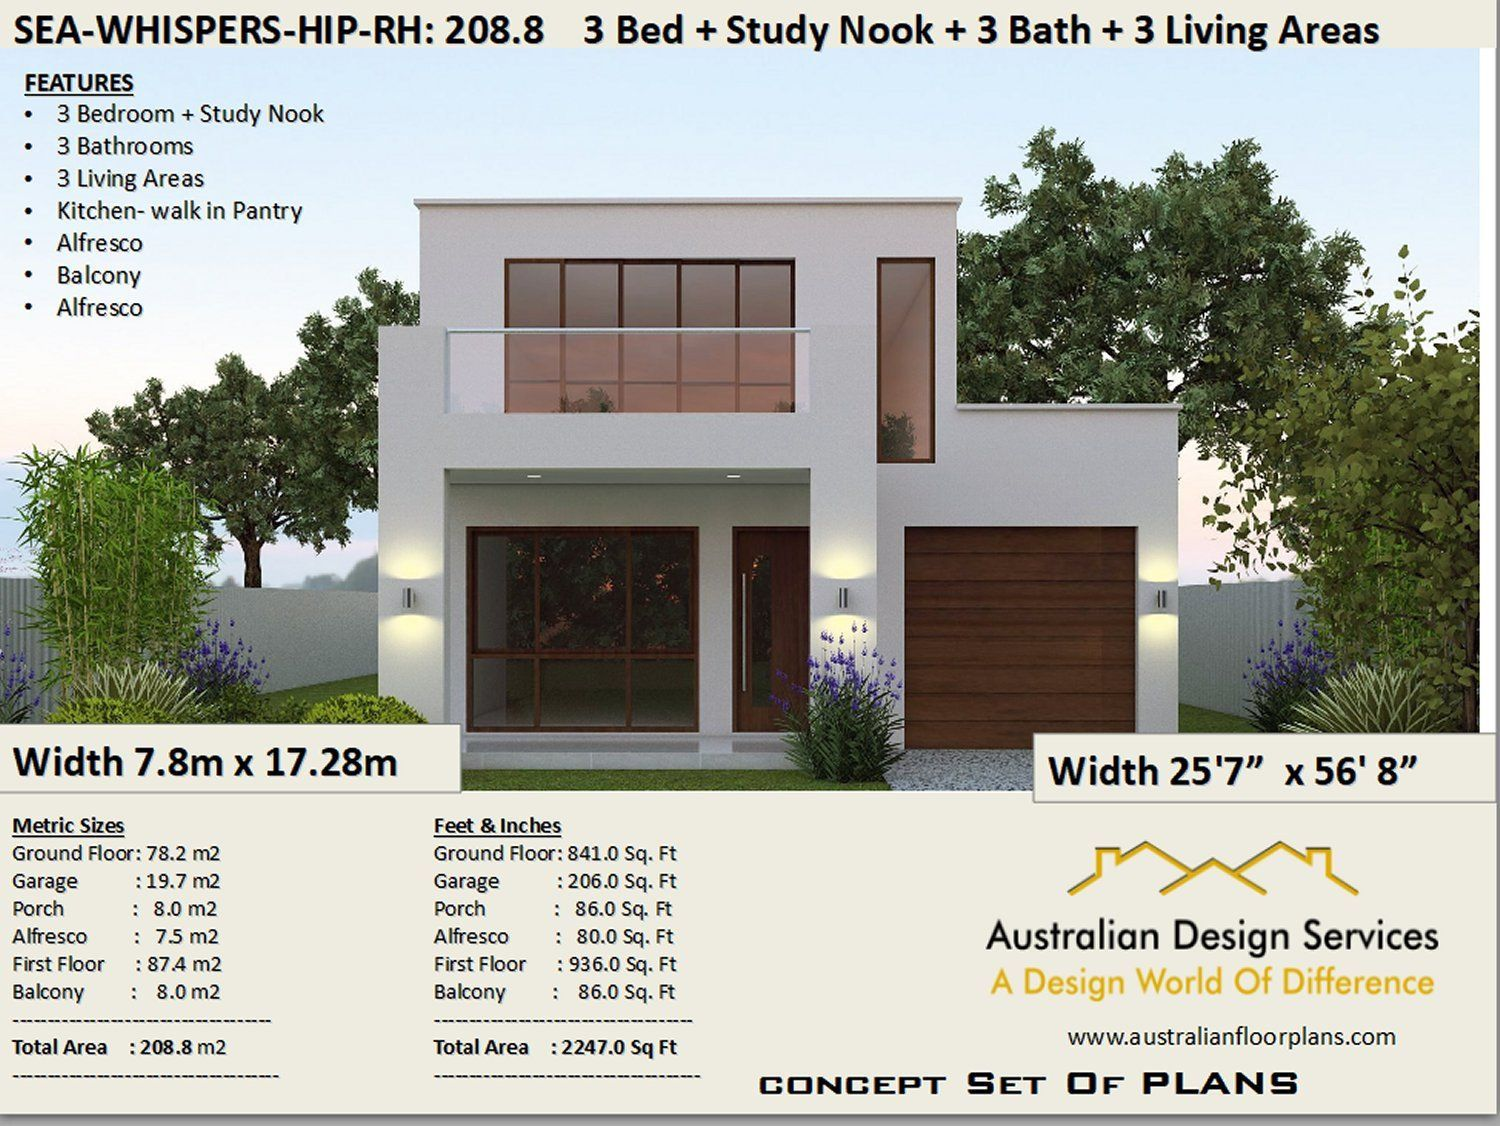 Duplex-Townhouse house design |Modern 2 story home 208 m2 | 2247 sq.